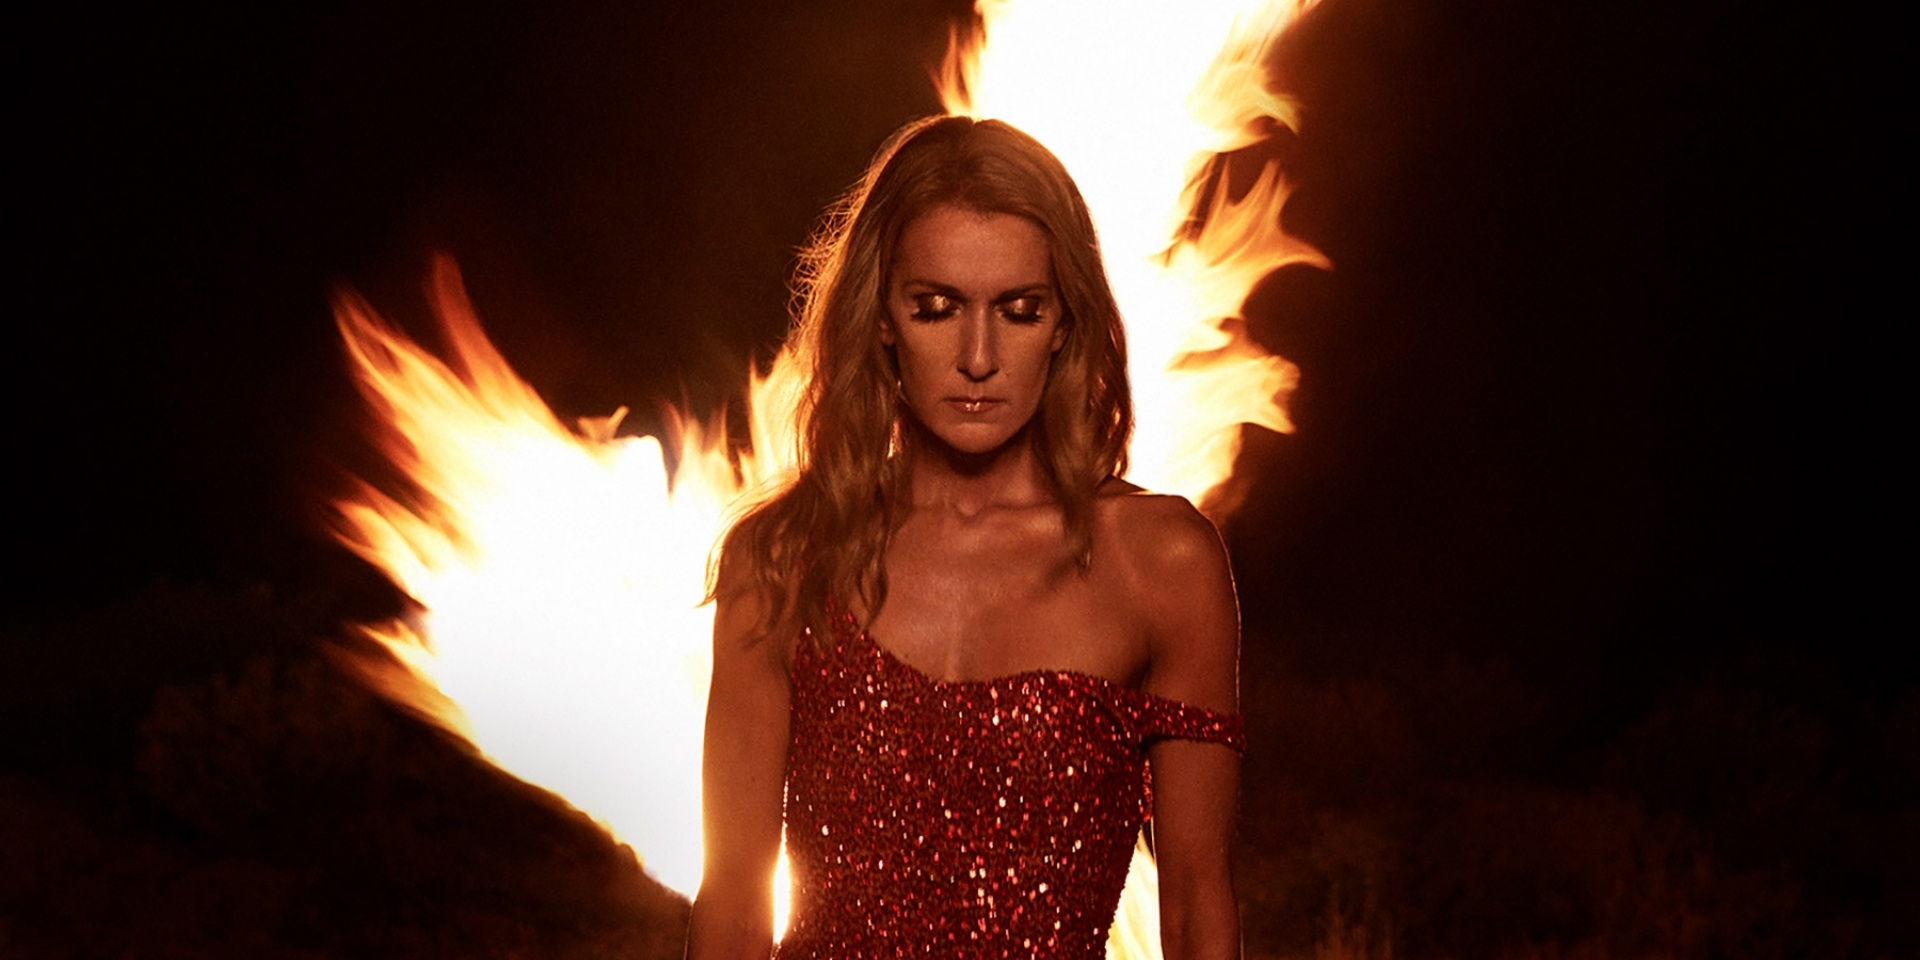 Celine Dion returns with three new songs from forthcoming album